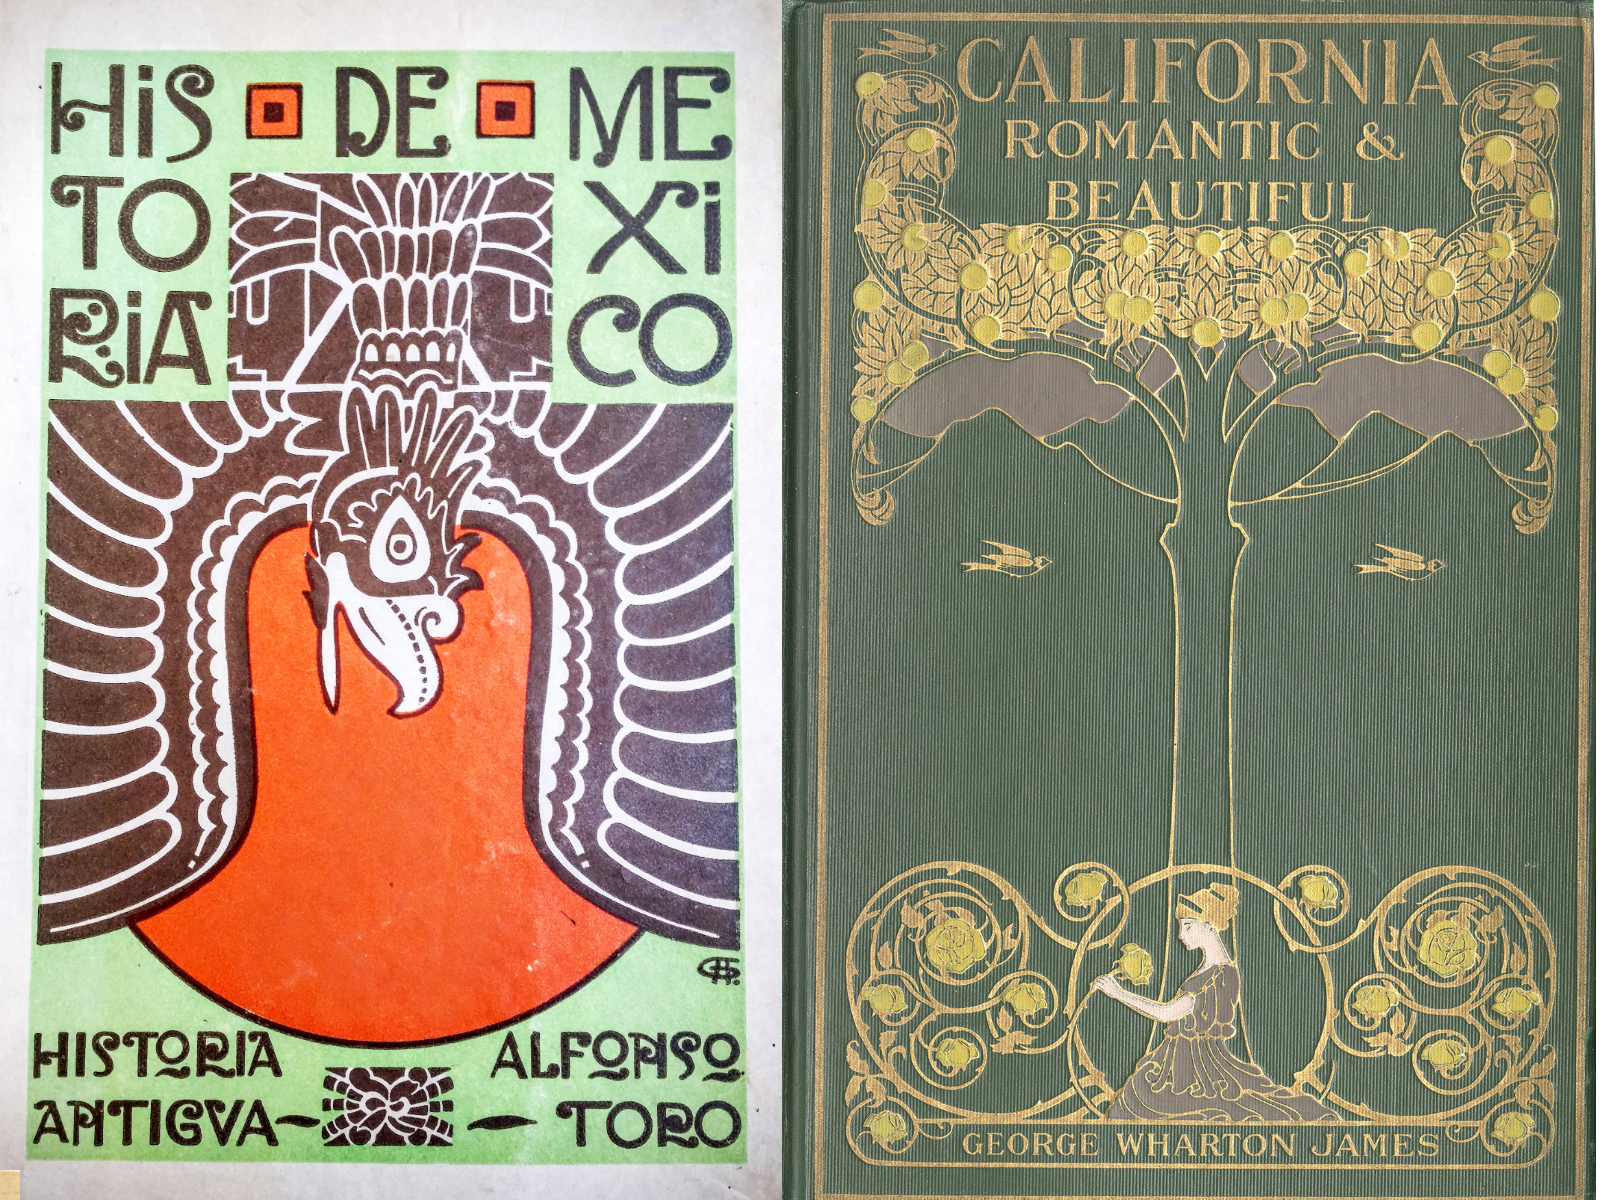 front covers of rare books at CSUDH